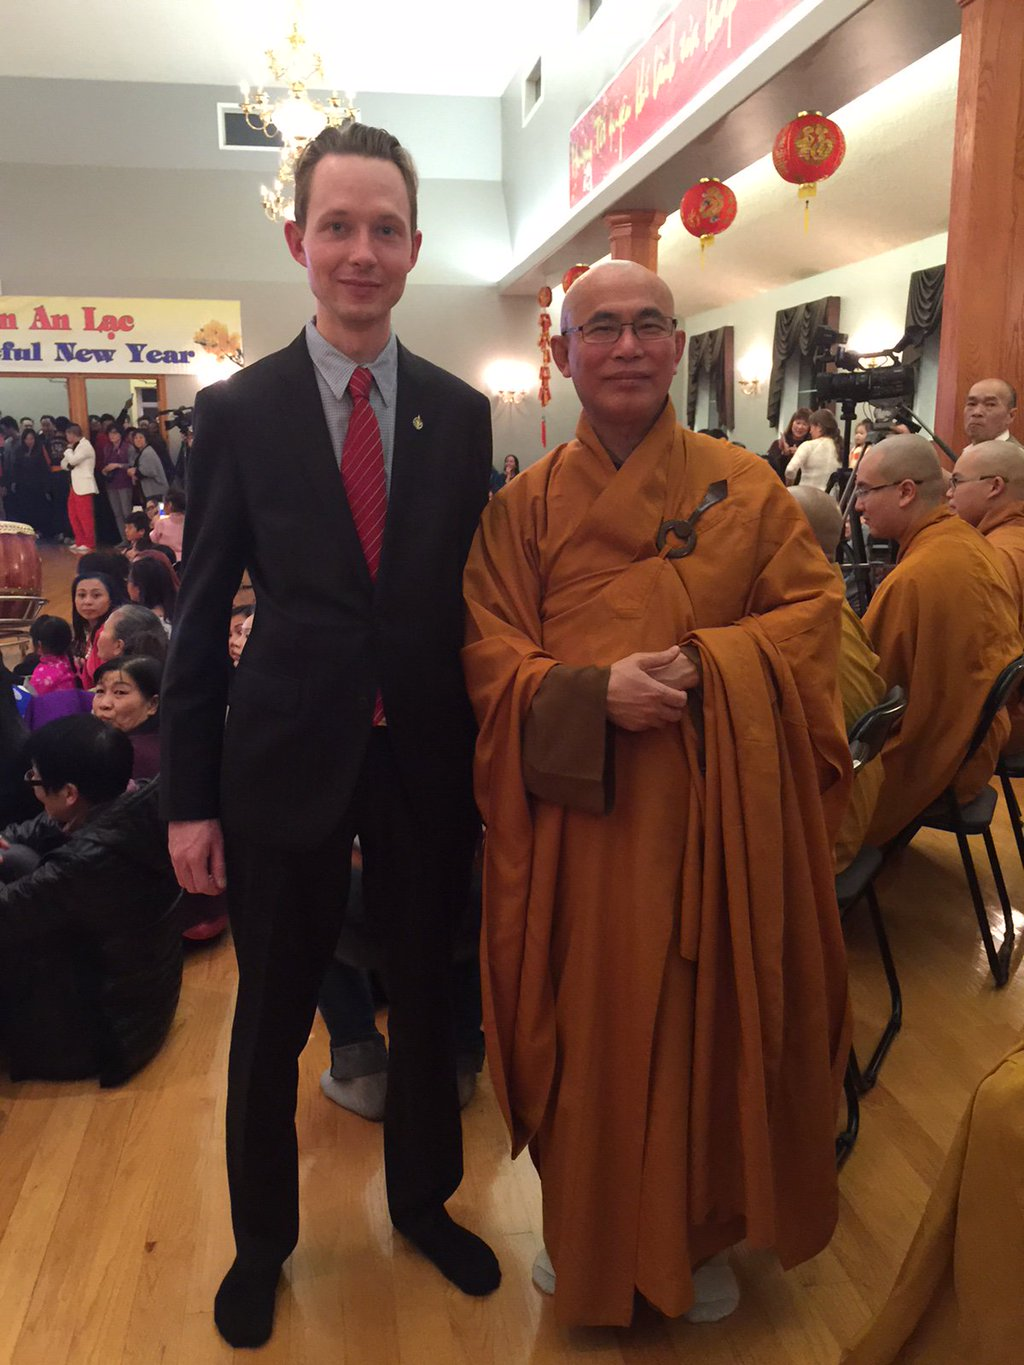 With Master Lam at the Truc Lam Monastery for the Tet New Years' celebration.